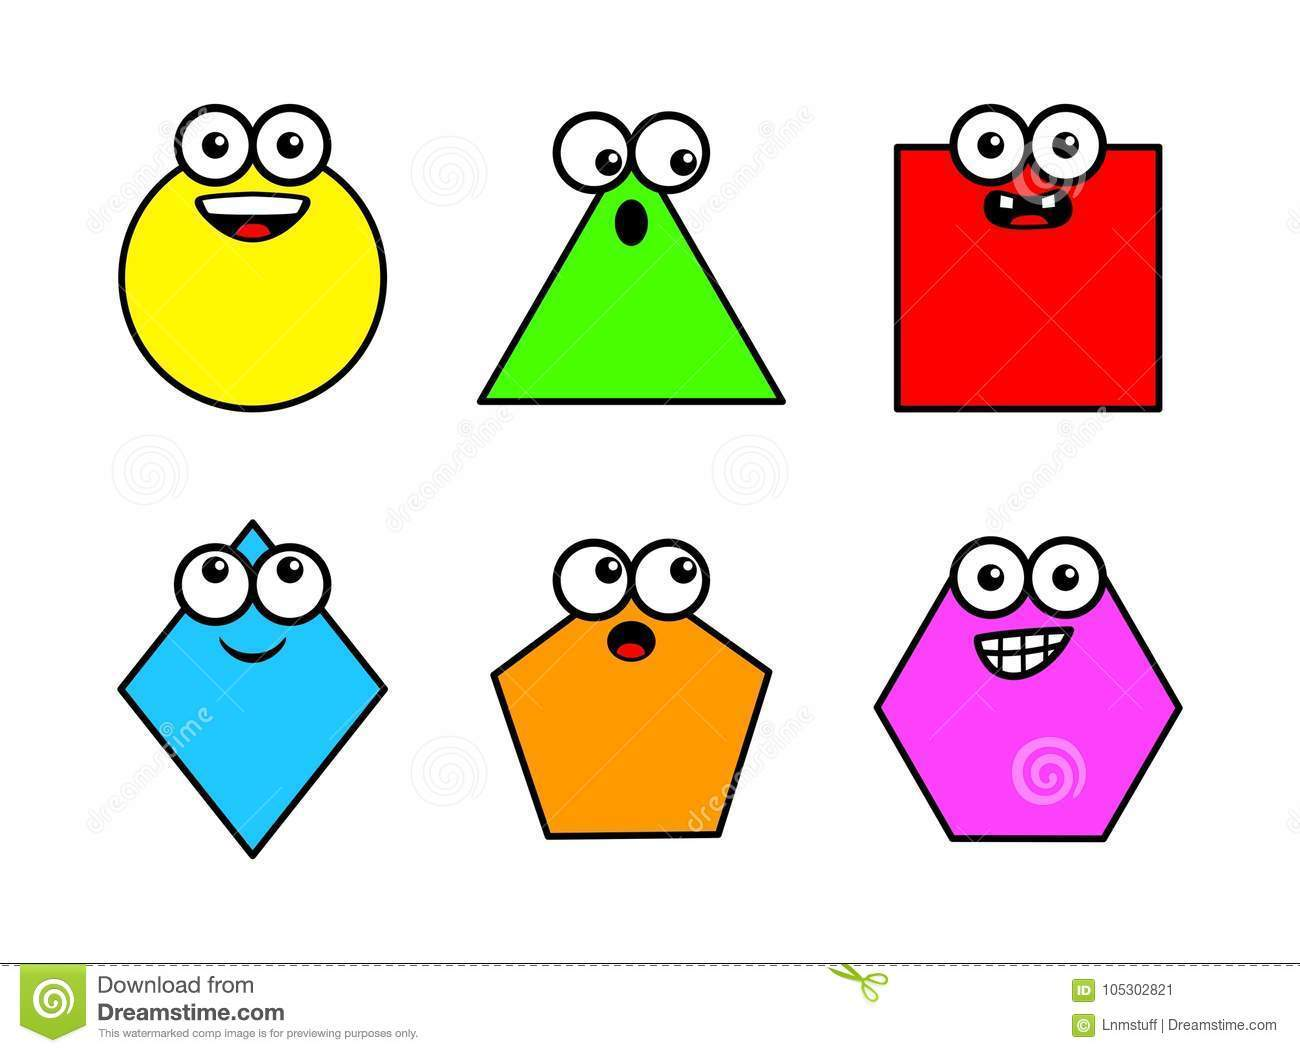 Clipart gallery shapes freeuse Shapes clipart images 1 » Clipart Portal freeuse